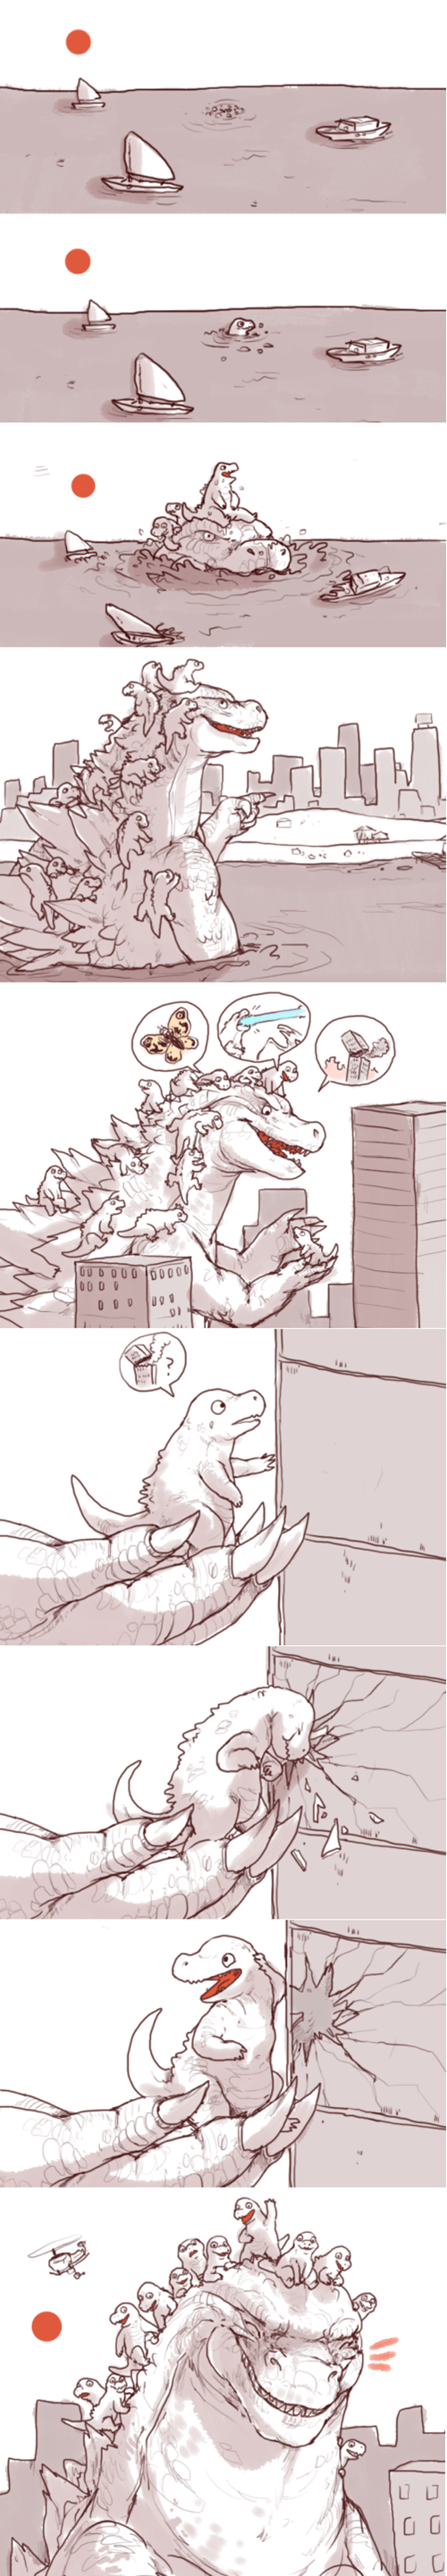 dads godzilla kaiju win web comics monster - 8544000000